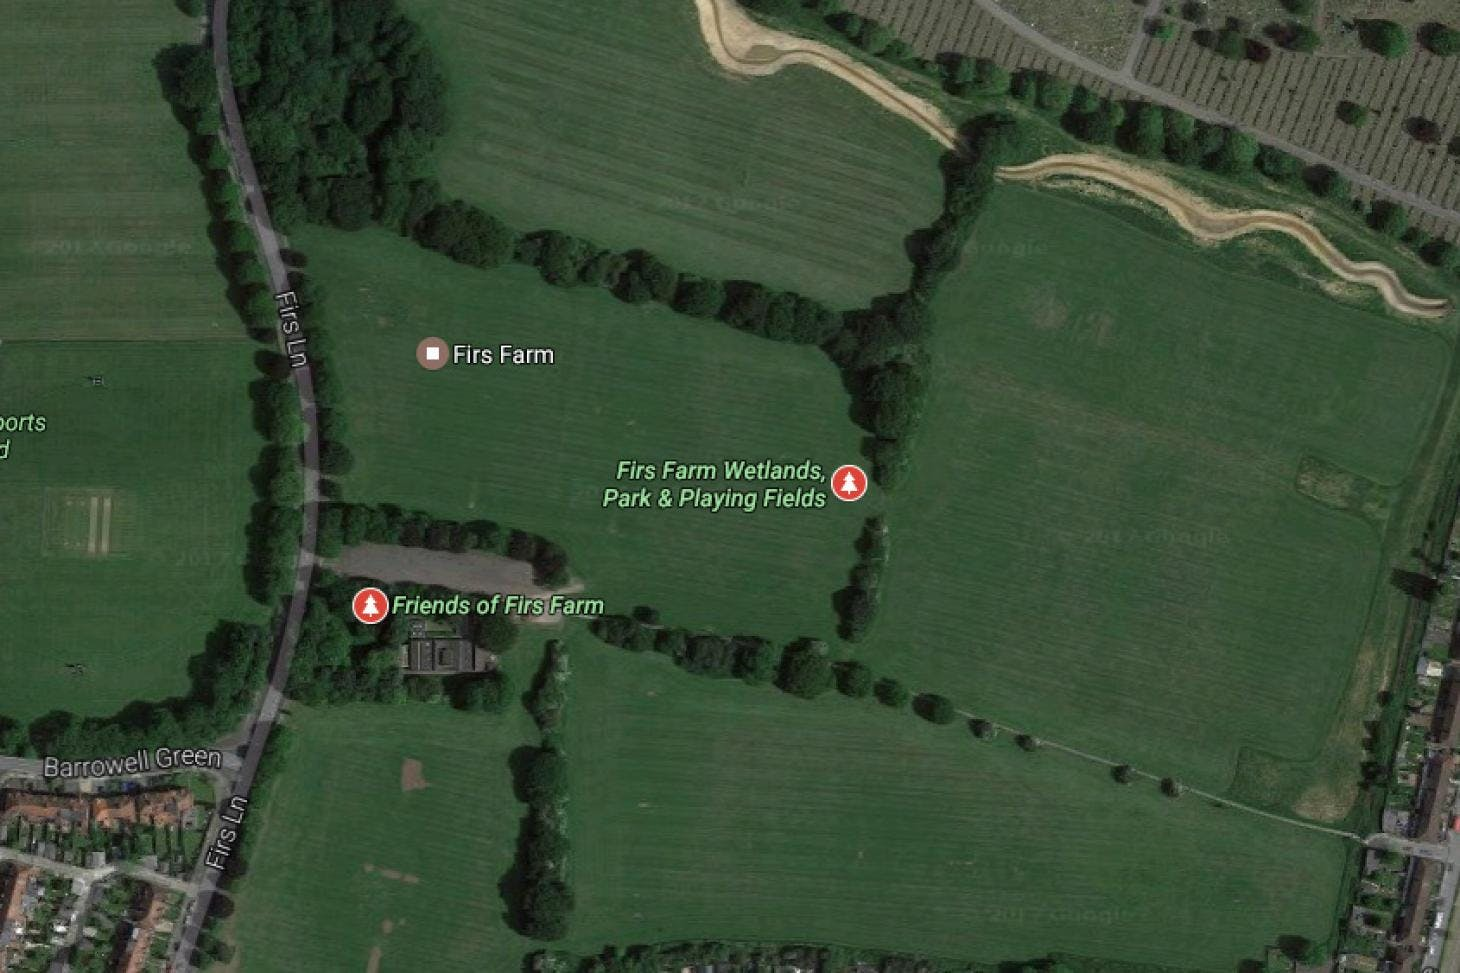 Firs Farm Union | Grass rugby pitch